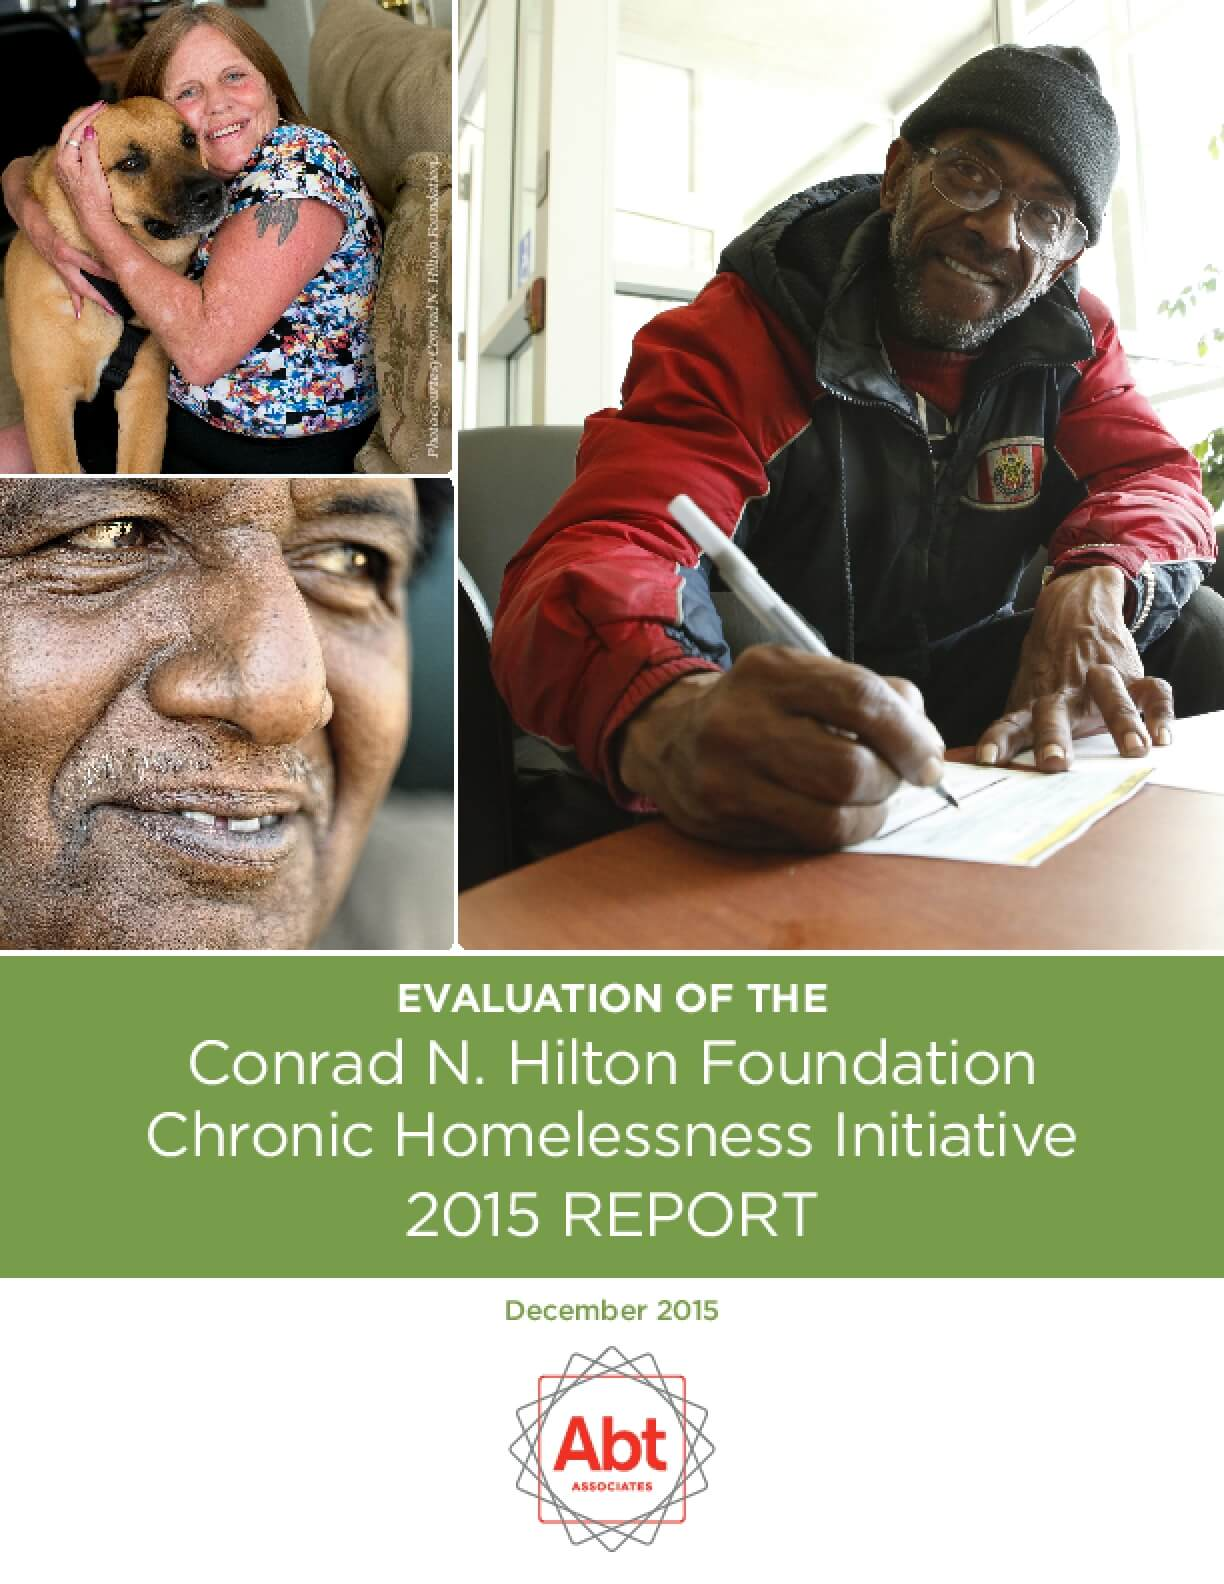 Evaluation of the Conrad N. Hilton Foundation Chronic Homelessness Initiative: 2015